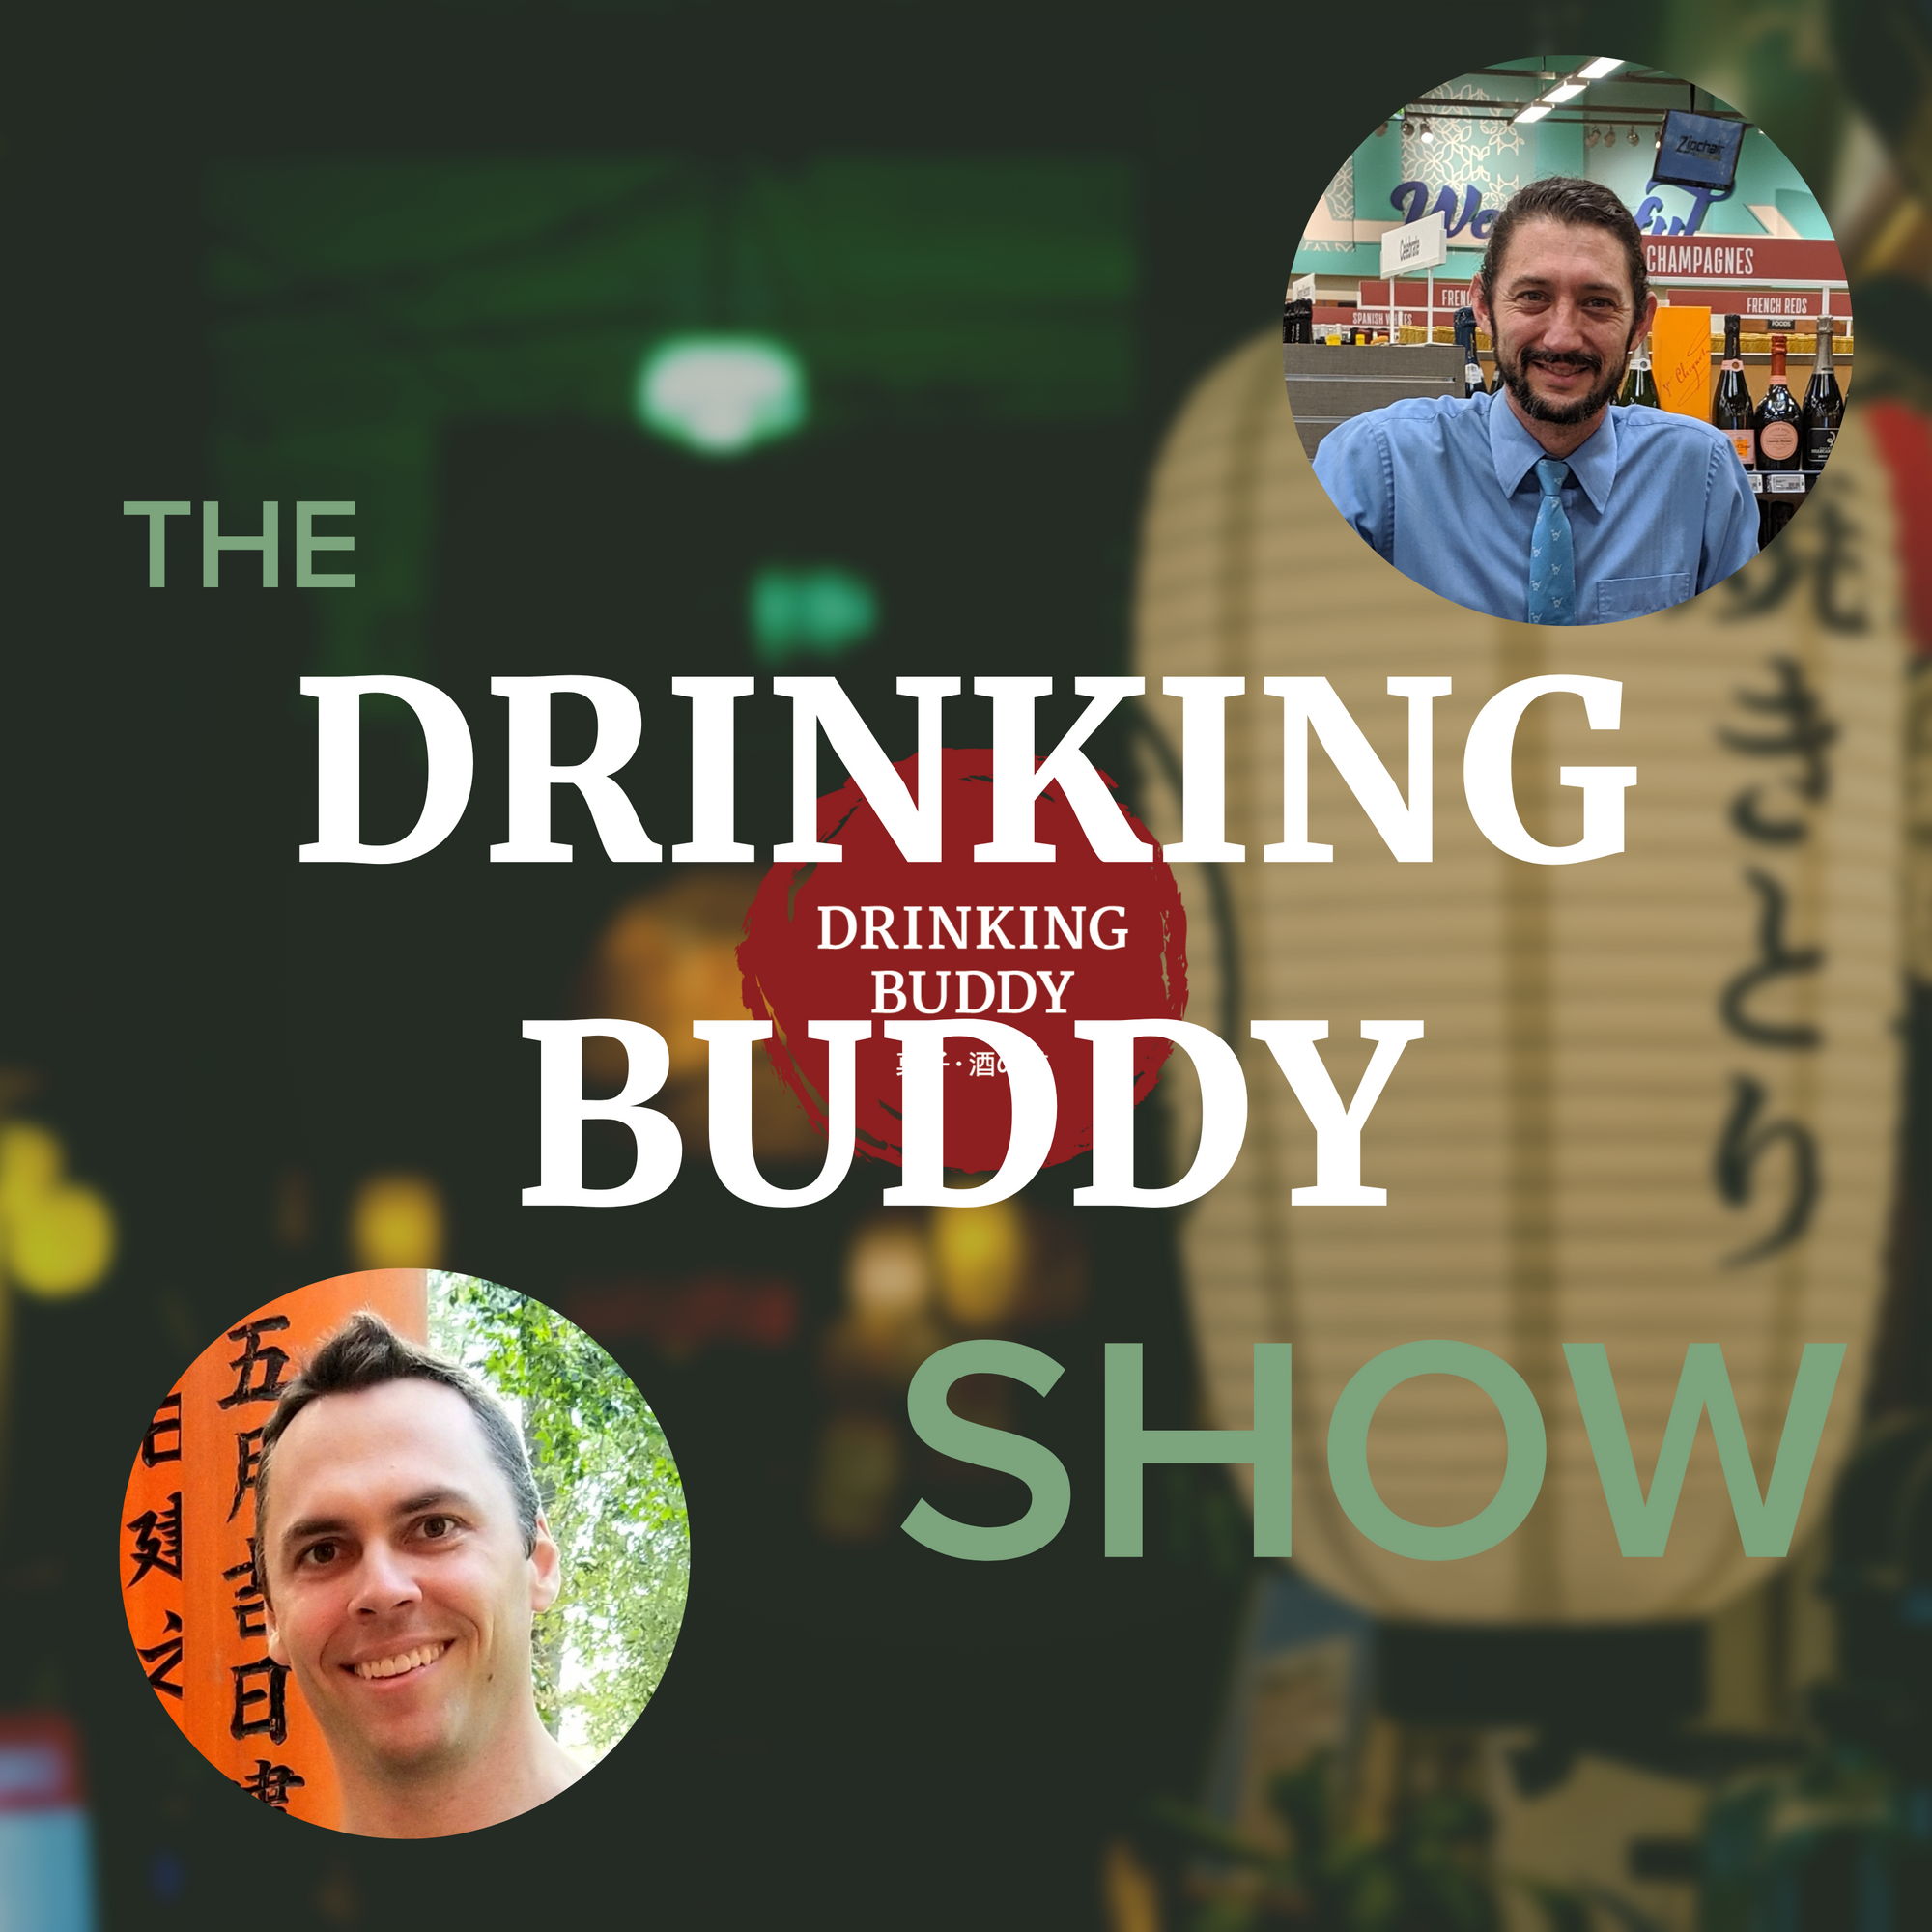 The Drinking Buddy Show Episode 2: Greg Beck – The Accidental Sake Expert